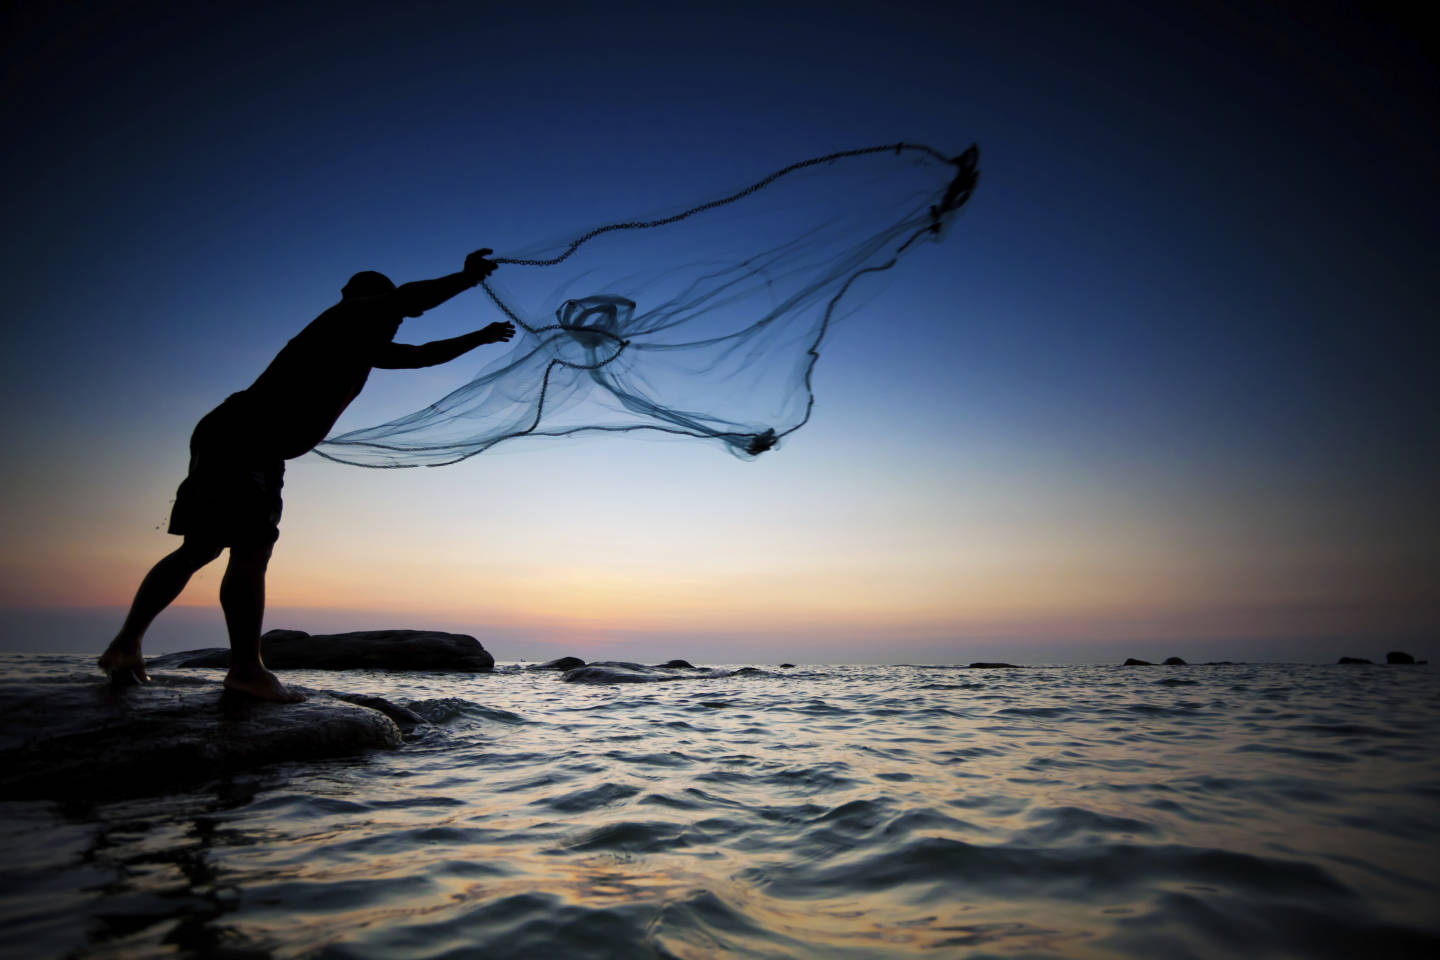 man throwing fishing net into the ocean at sunset